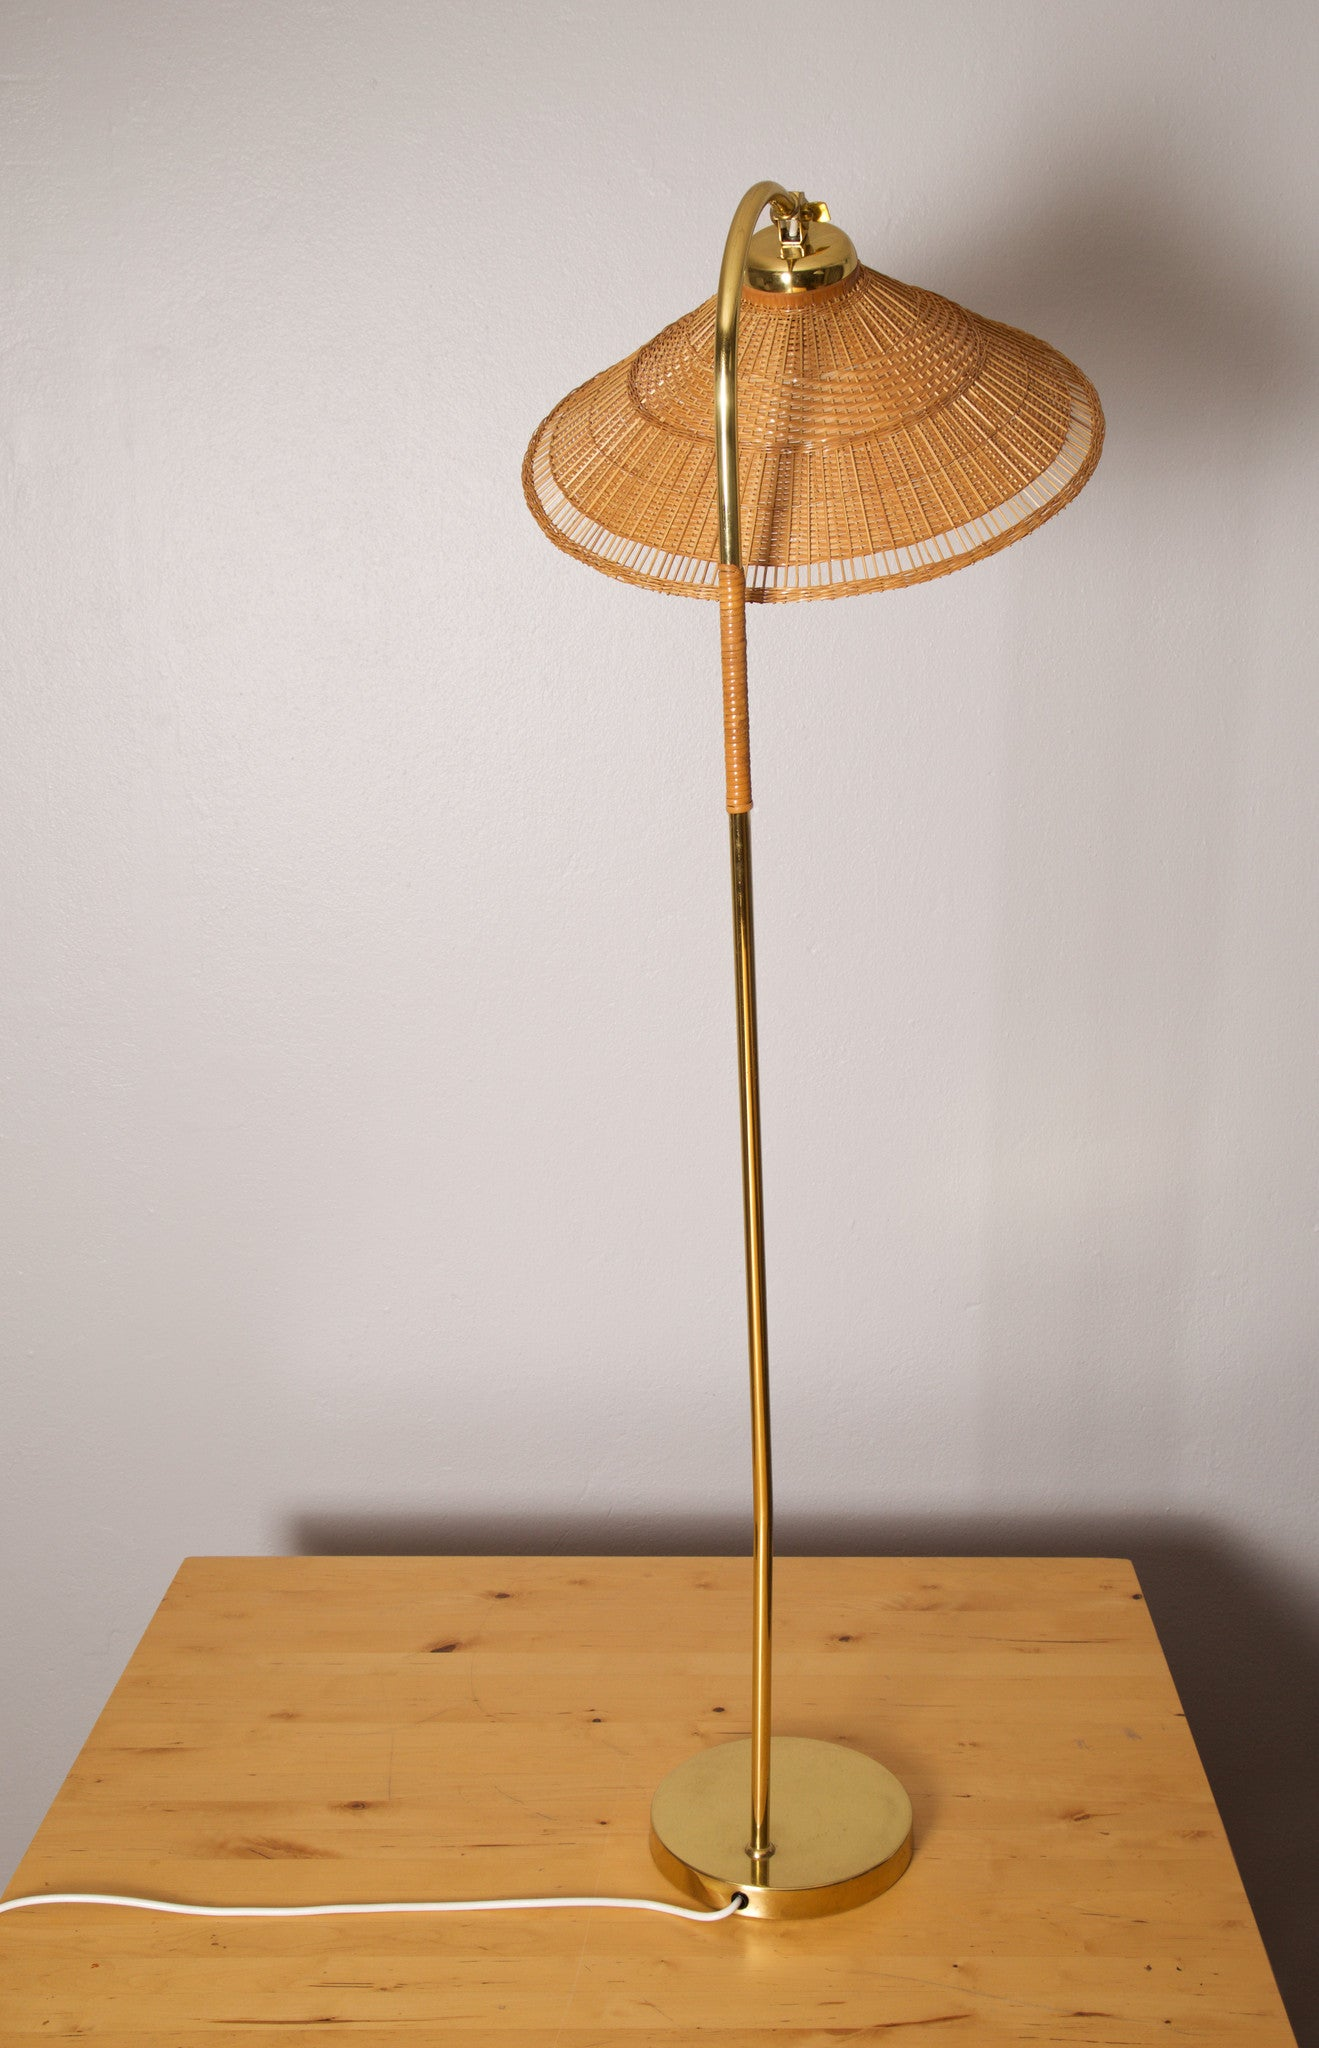 Paavo Tynell Floor Lamp, Idman Oy, Finland, 1950s - The Exchange Int